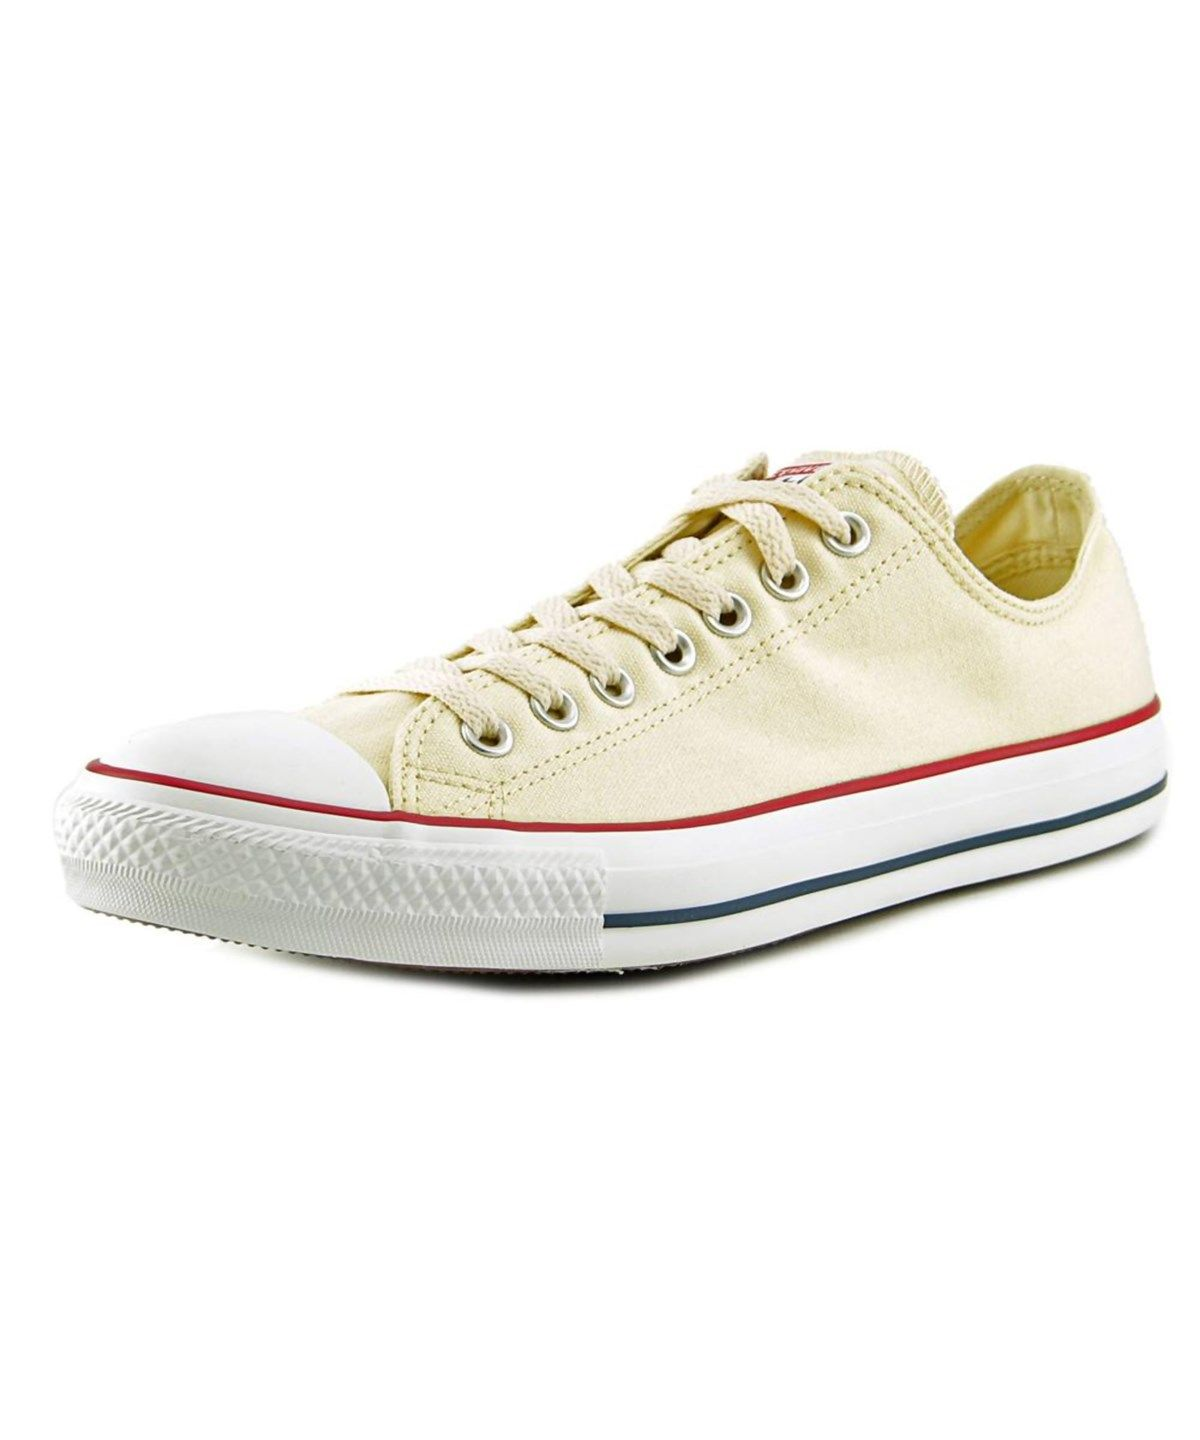 000520dd1a61 CONVERSE CONVERSE CHUCK TAYLOR ALL STAR CORE OX MEN ROUND TOE CANVAS IVORY  SNEAKERS .  converse  shoes  sneakers